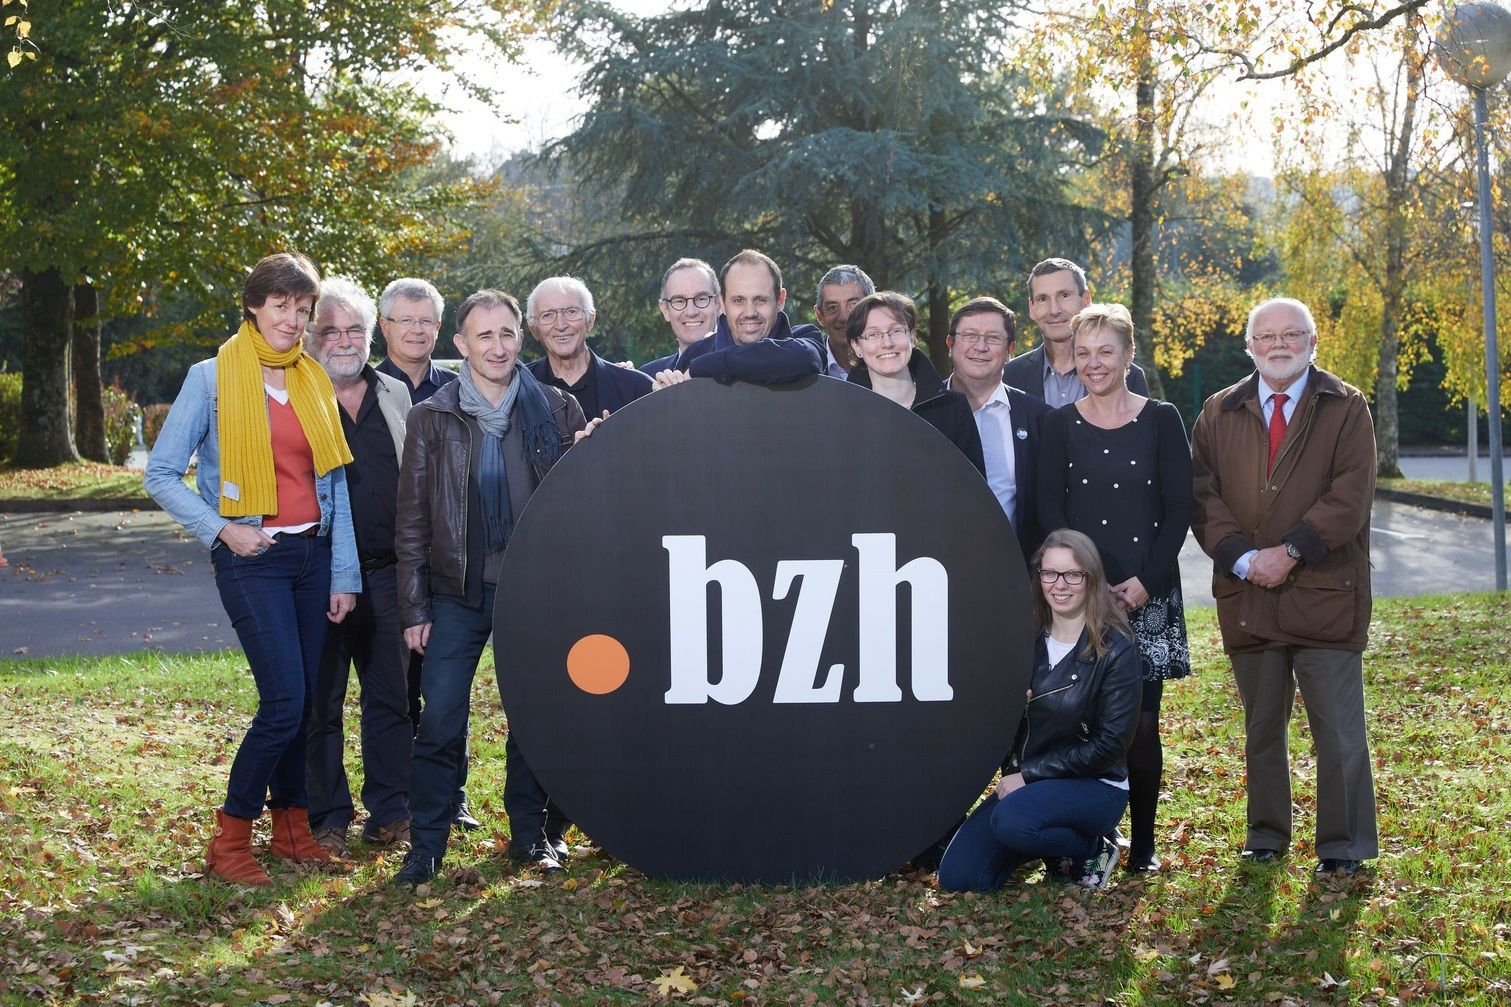 equipe bzh about